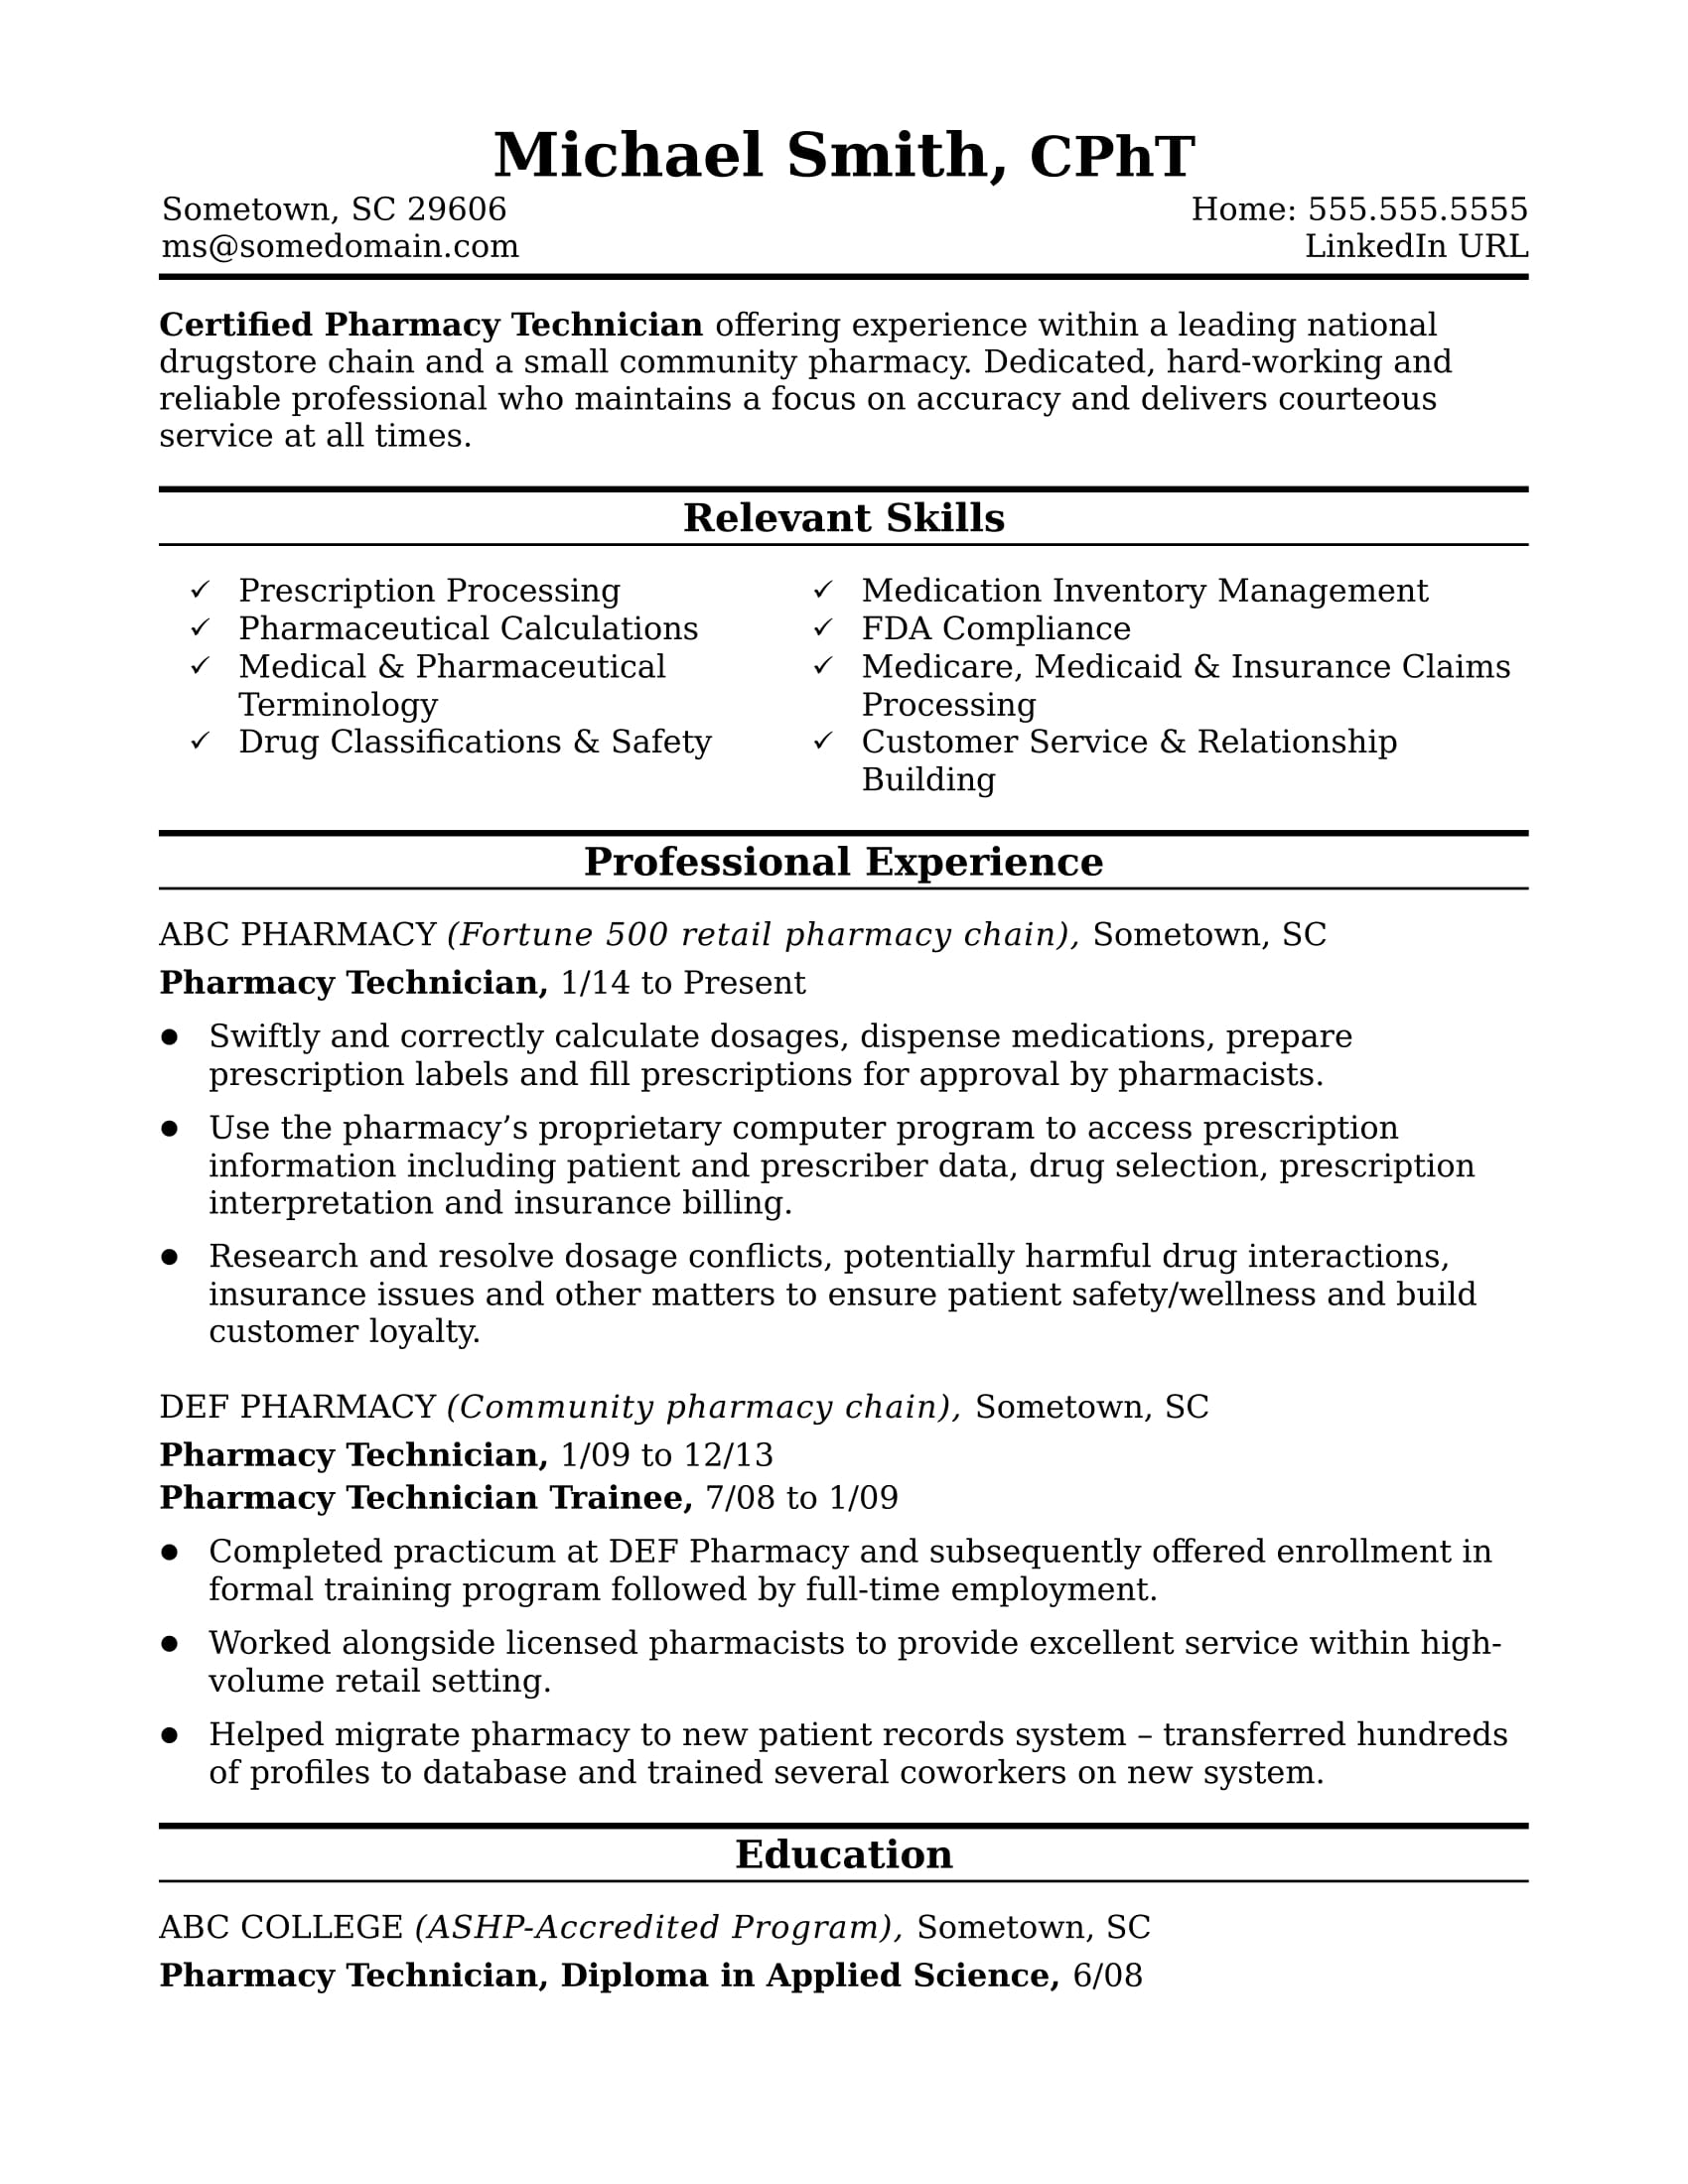 Sample Resume For A Pharmacy Technician  Pharmacist Sample Resume